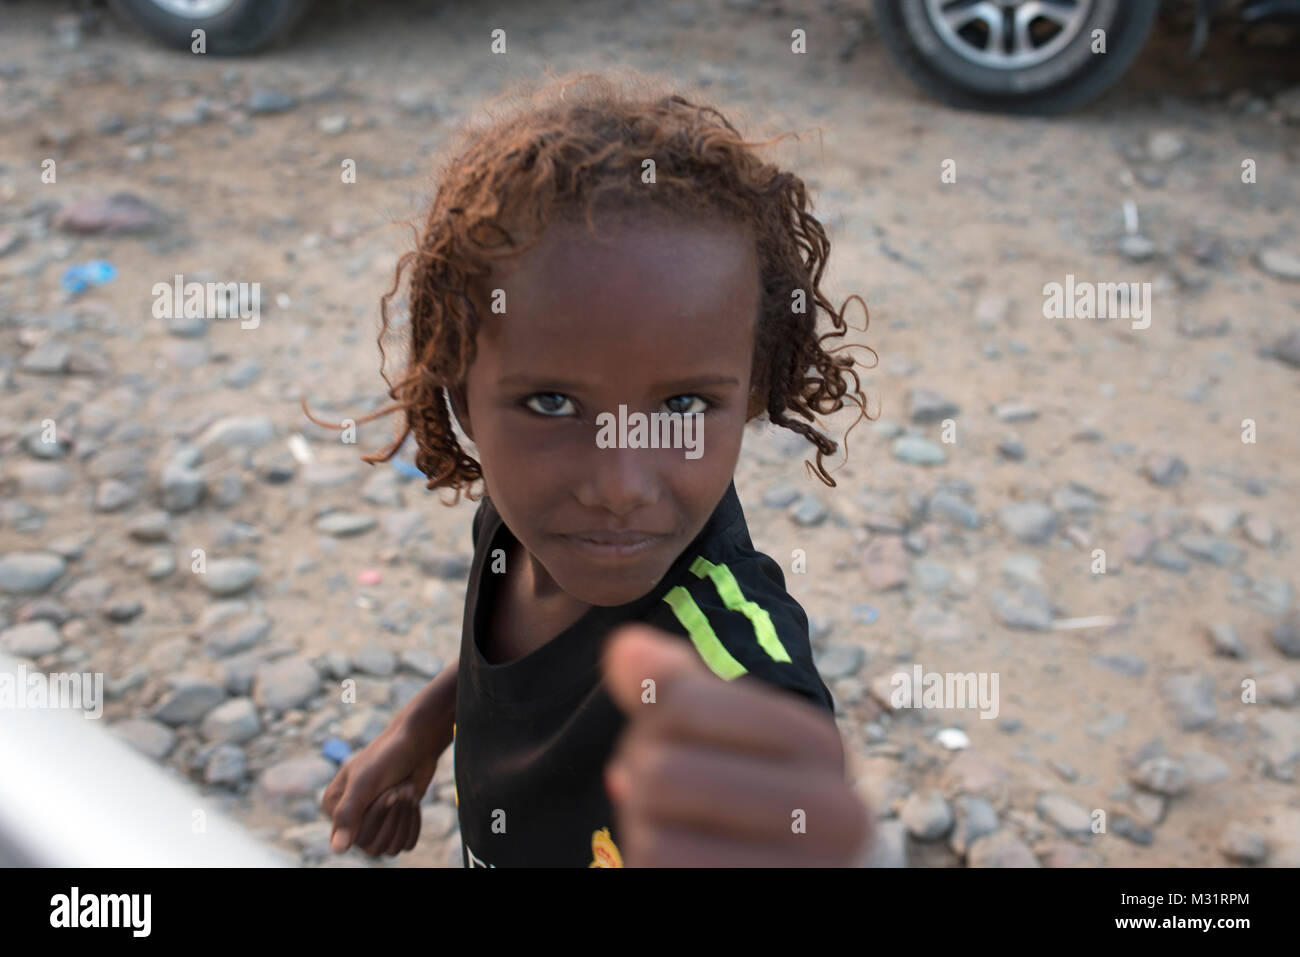 A young Afar girl pretending to punch a tourist who has no pen for her. Hamed Ale, Danakil Depression, Ethiopia. - Stock Image